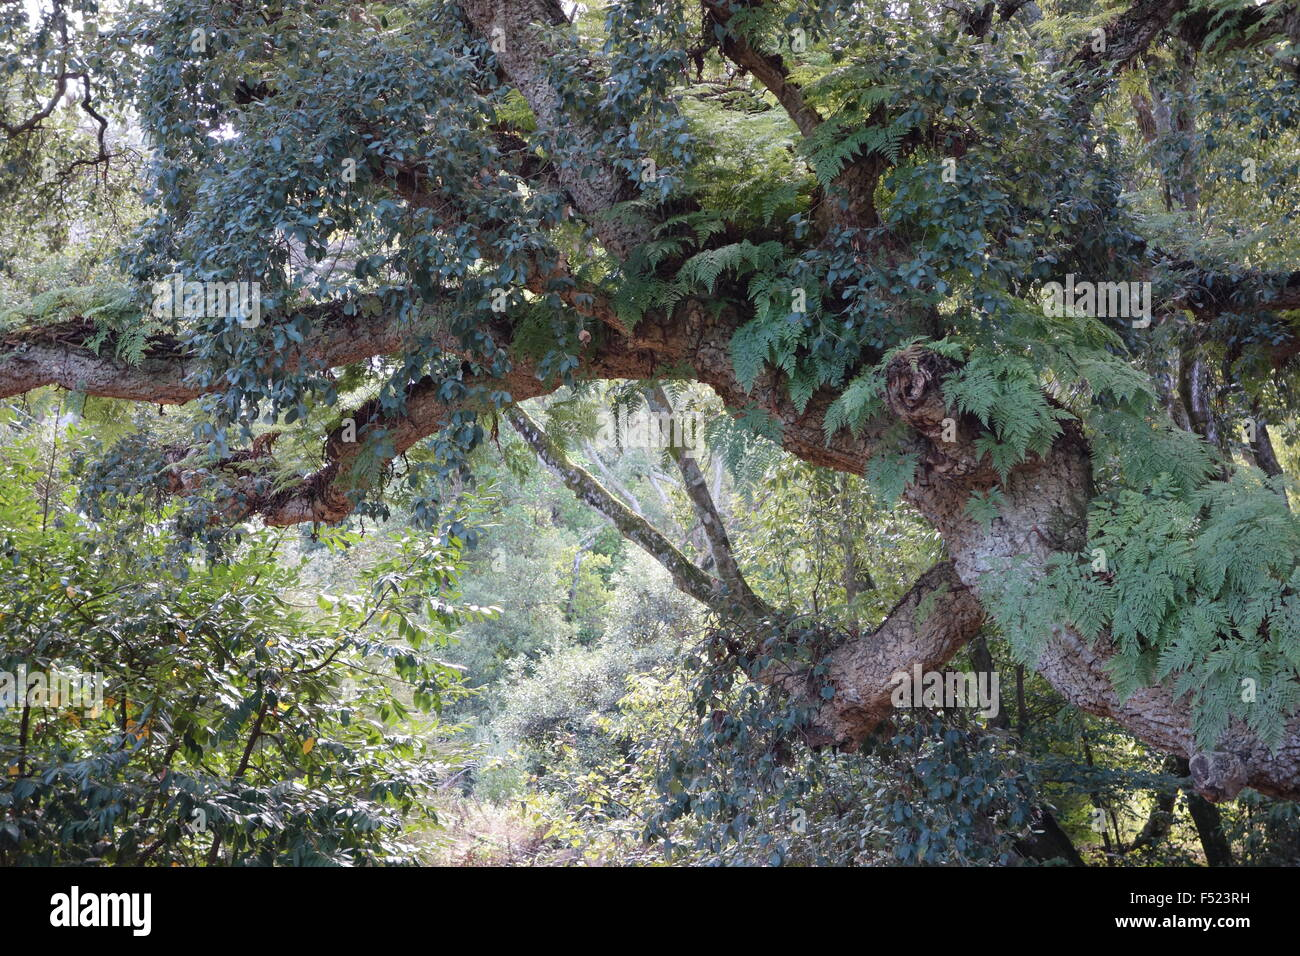 Montserrate Sintra Portugal cork oak with fern growth and dense foliage - Stock Image